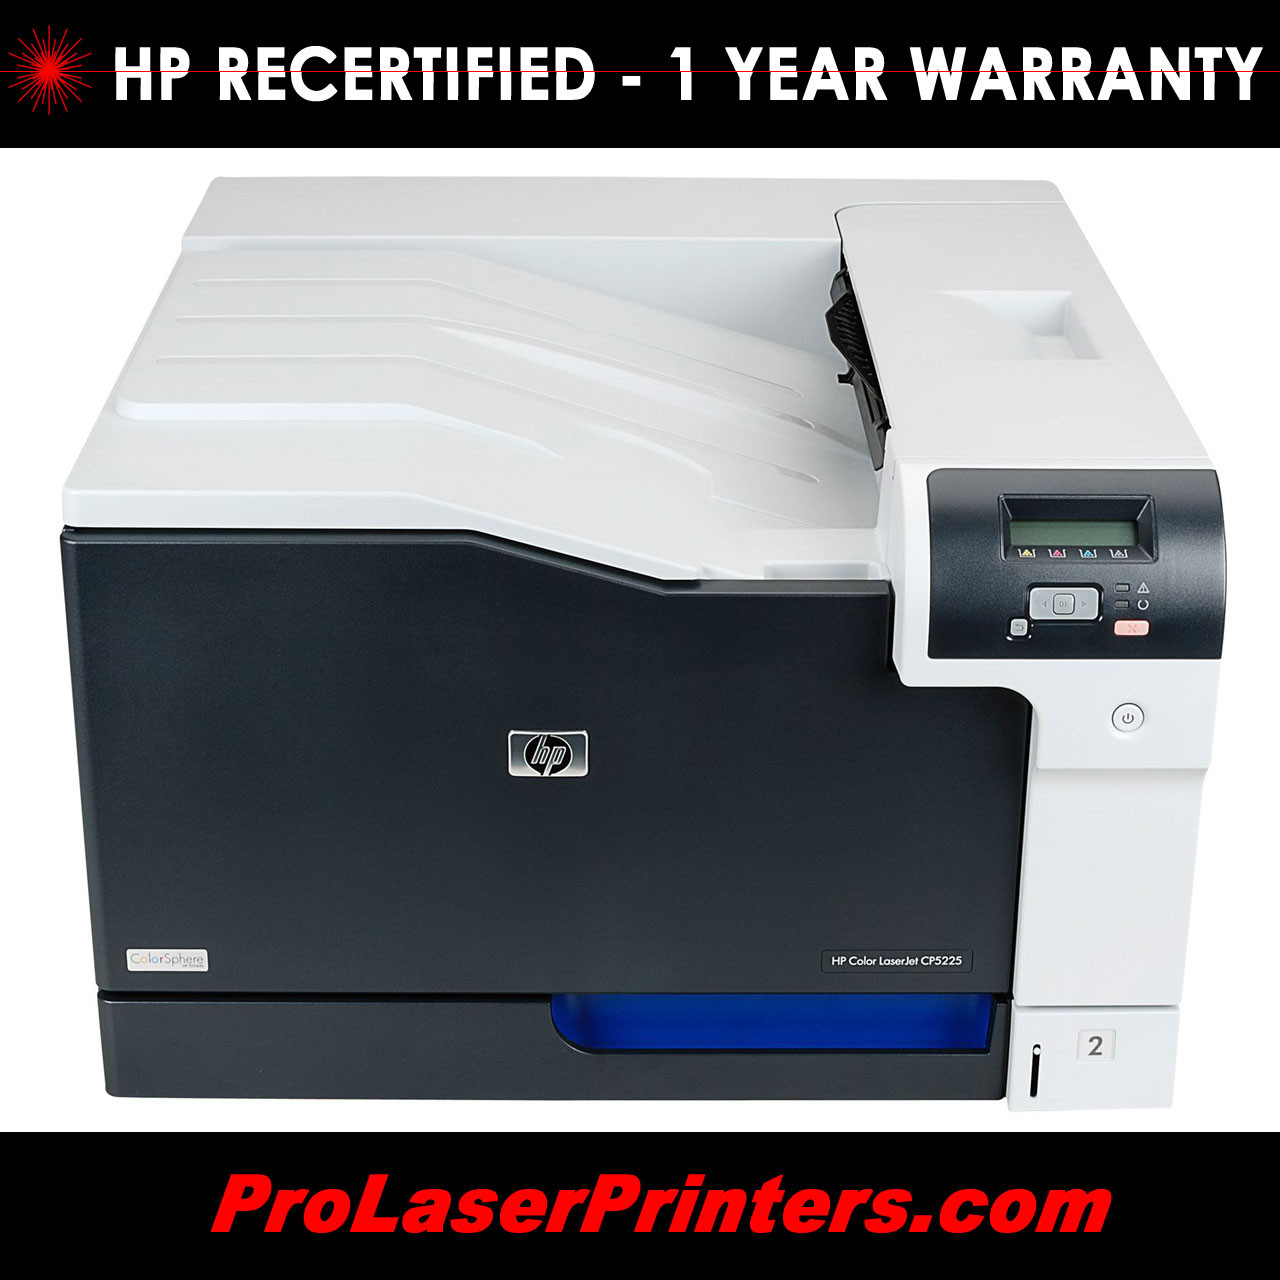 hp recertified color laserjet cp5225n premium laser printer ce711a p rh prolaserprinters com HP Color Copy Machines HP Color Printers for Printing Plans